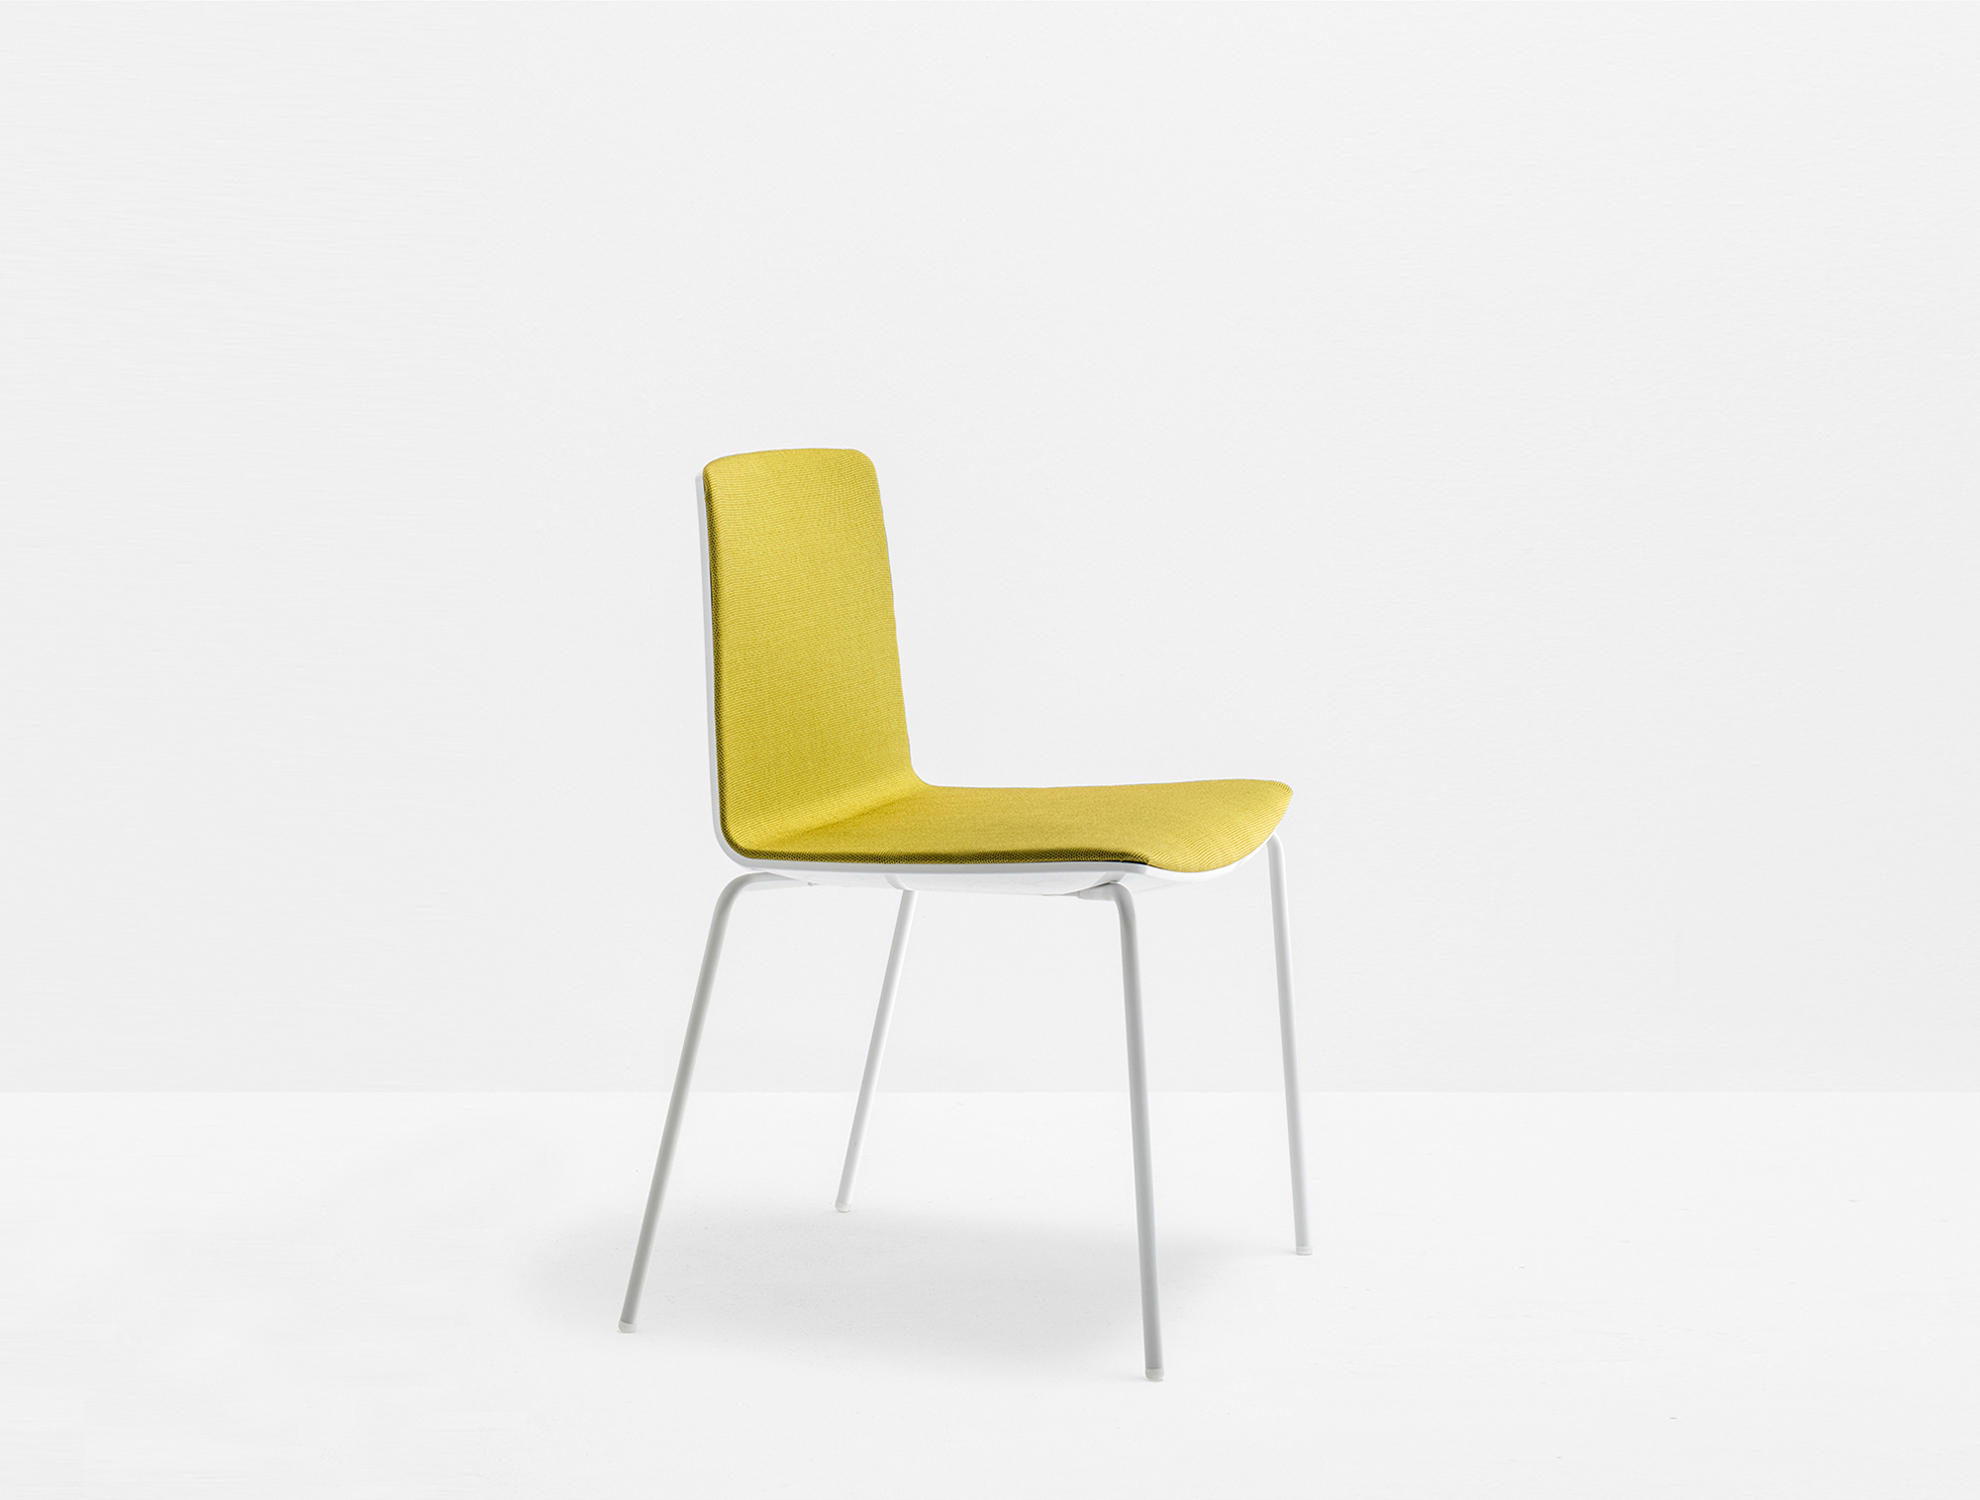 Noa 725 By PEDRALI | Chairs ...